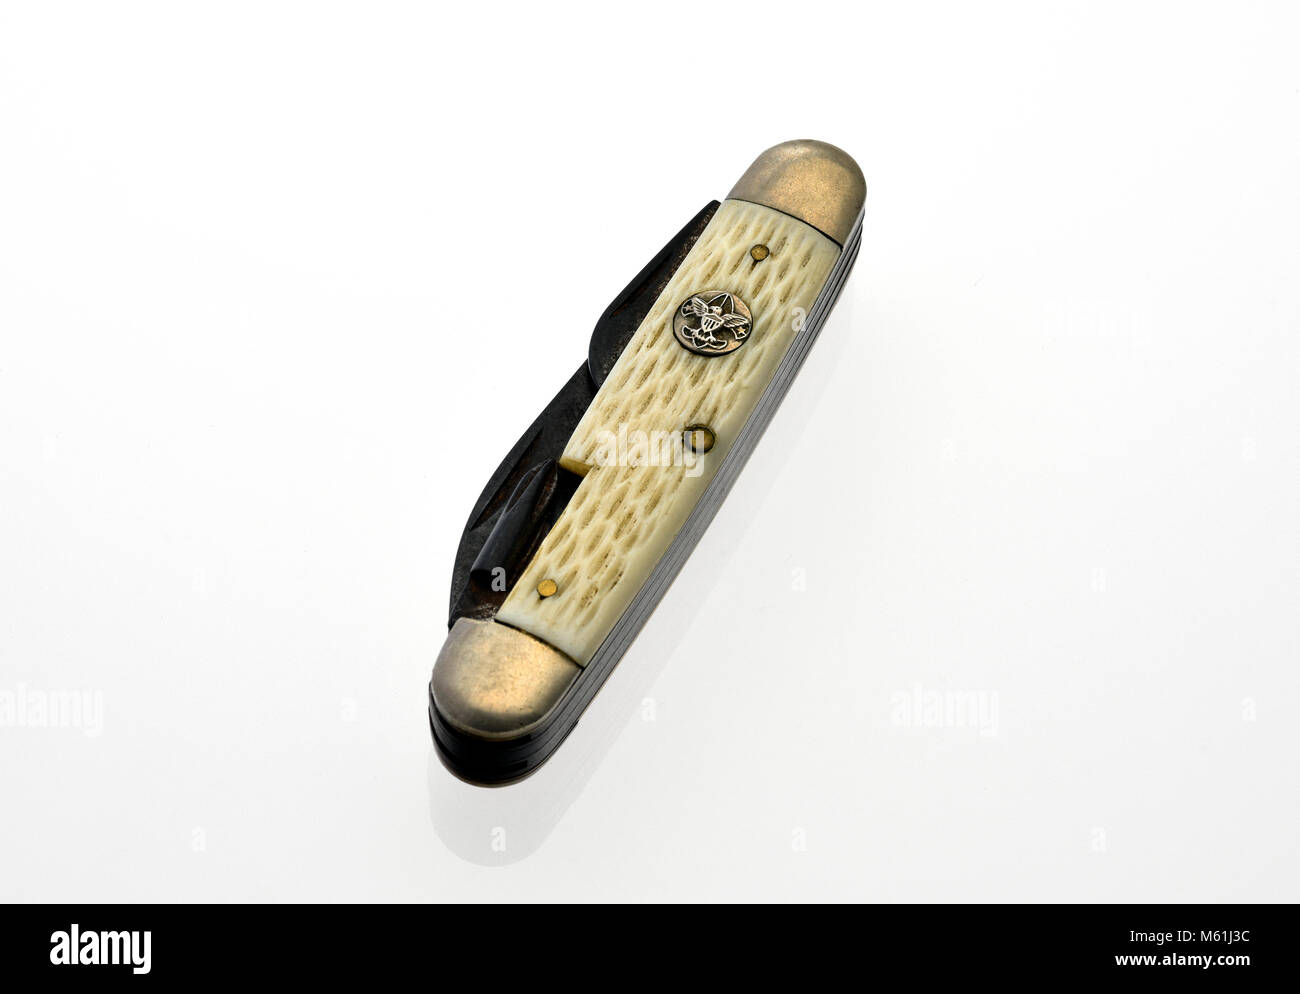 Boy Scouts Pocket Knife - Stock Image